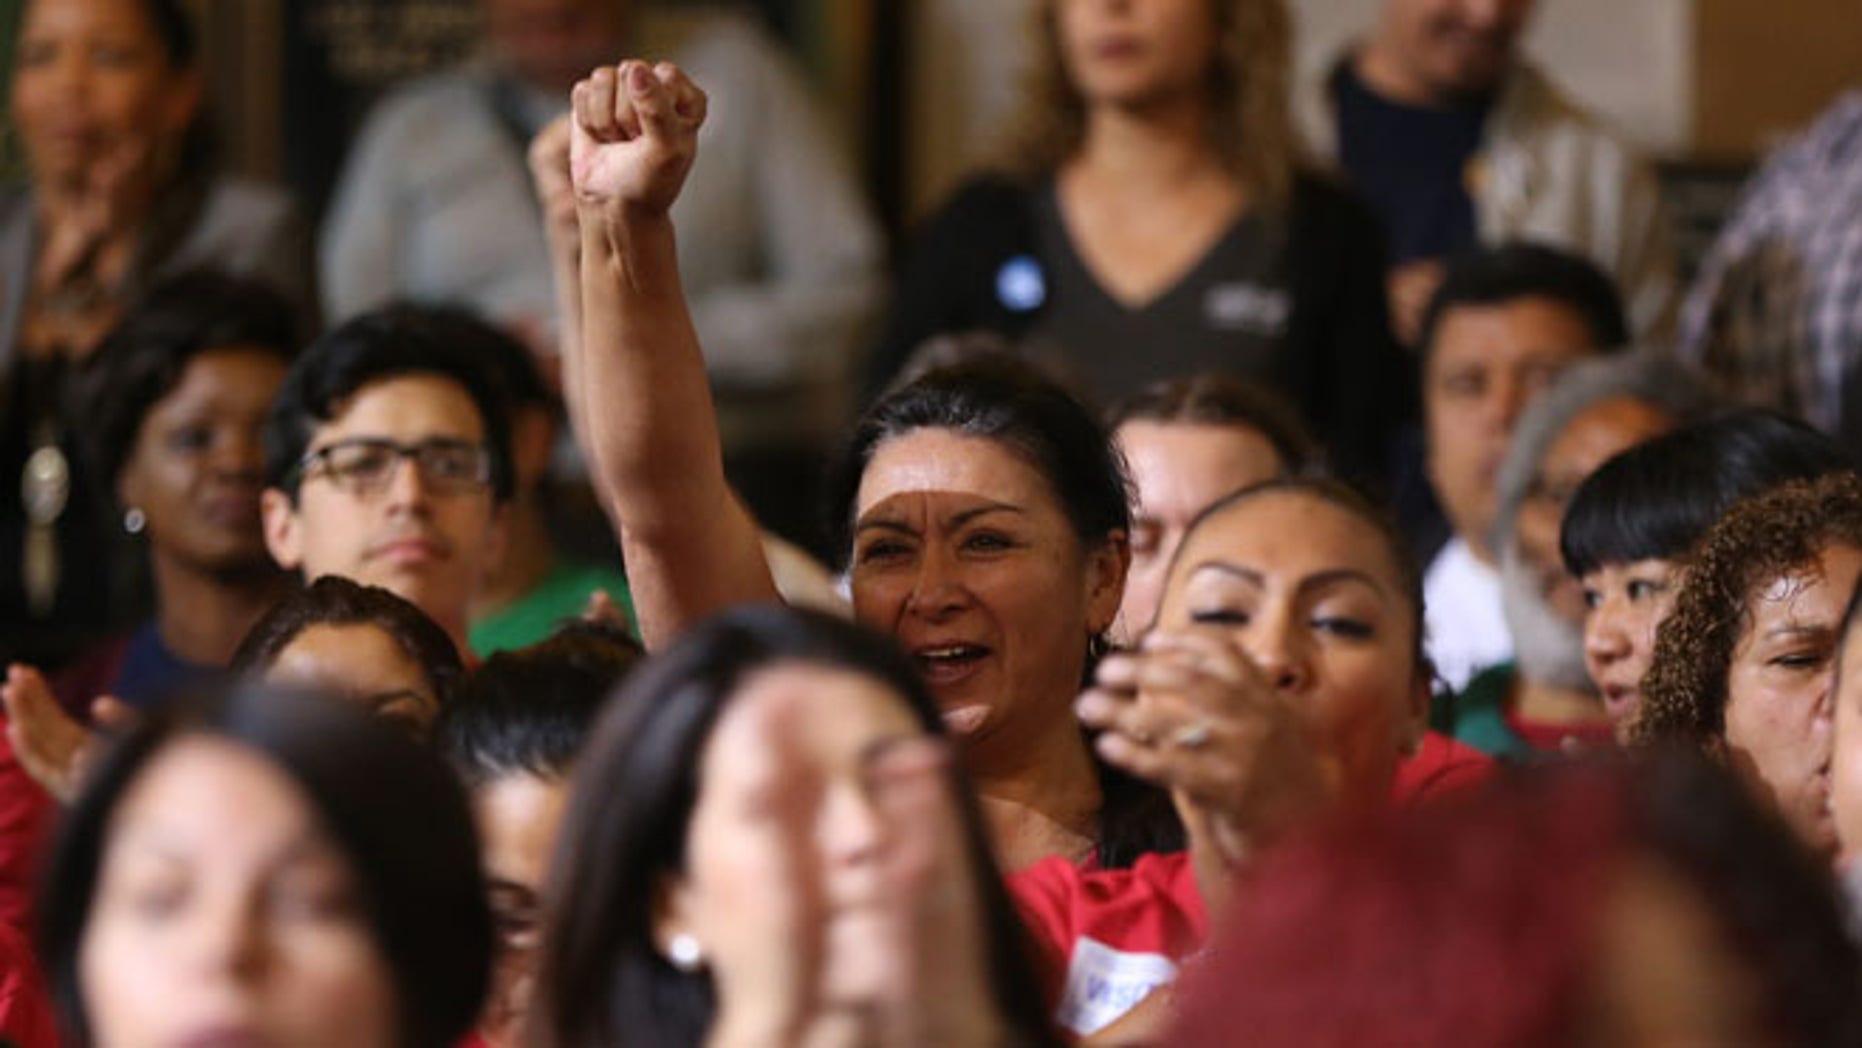 May 19, 2015: Workers react as the Los Angeles City Council votes to raise the minimum wage in the city to $15 an hour by 2020, making it the largest city in the nation to do so, in Los Angeles. (AP)